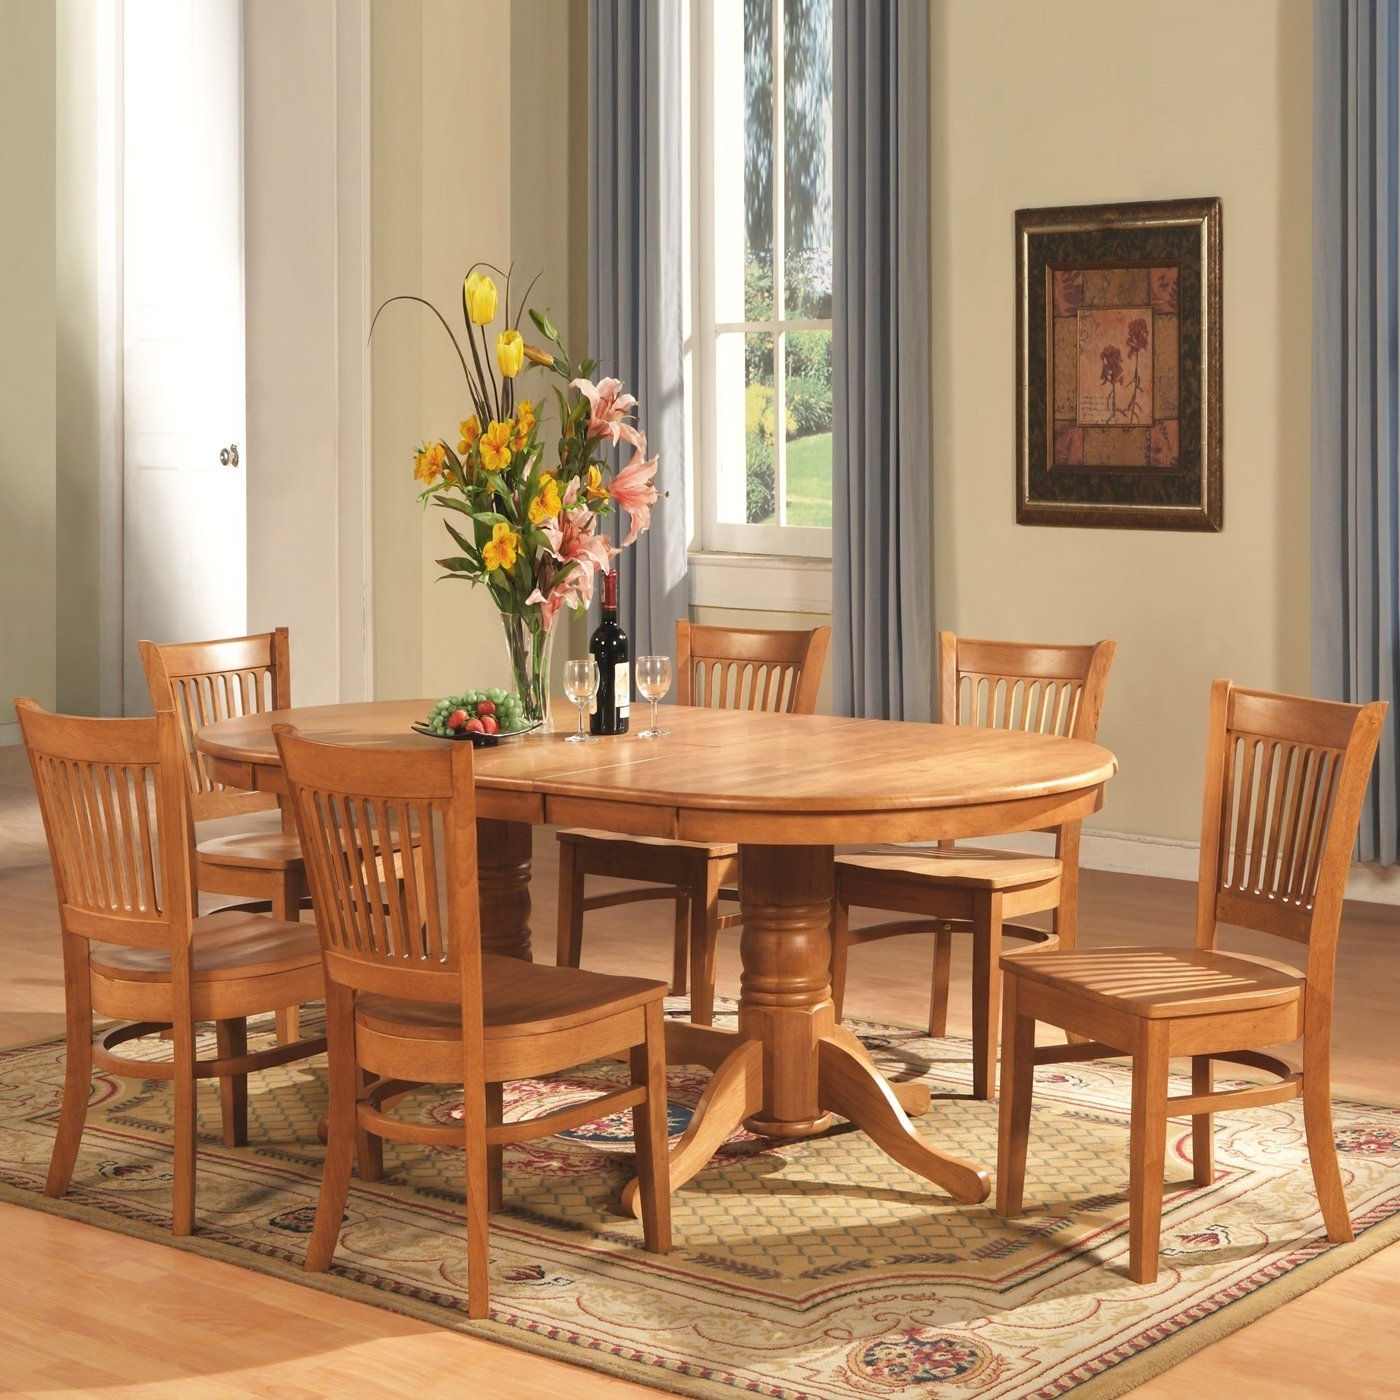 Newest Oval Oak Dining Tables And Chairs regarding East West Furniture 8 Piece Vancouver Oval Table Dining Set, Oak